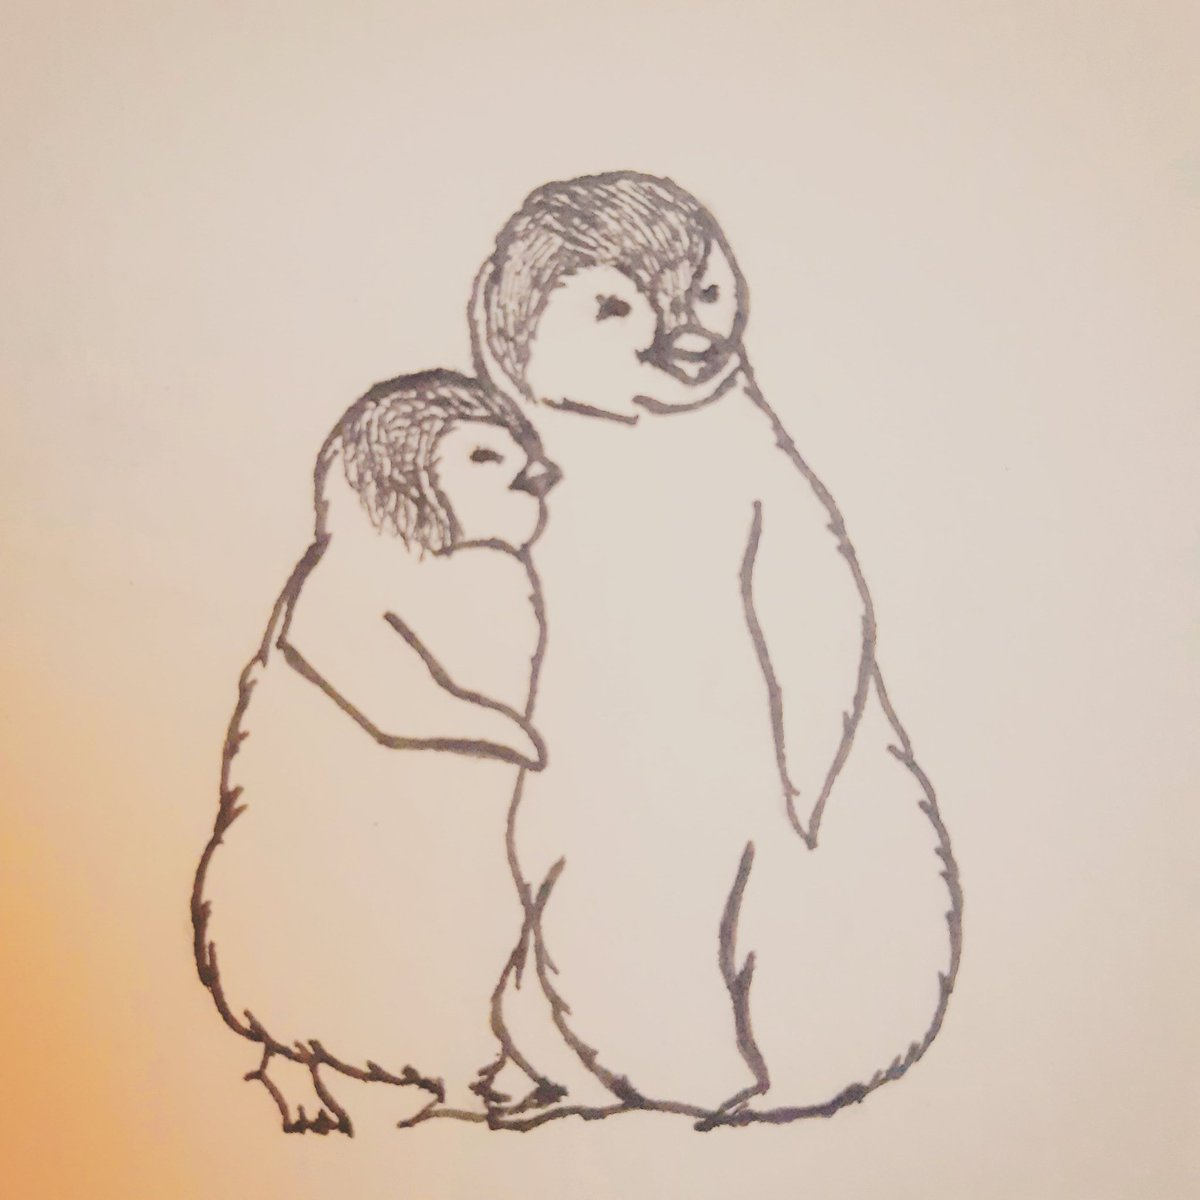 Just a little moment of warm rest is what we need.  #rest #simple #resting #penguin #warmth #warm #animal #nature #illustrations #illistration #drawing #artist #art #penart #freehand #contemporarydancer #moment #nature #scketch #イラスト #絵 #ペンギン #動物 #休日 #アート https://t.co/k0NMvH7iCo